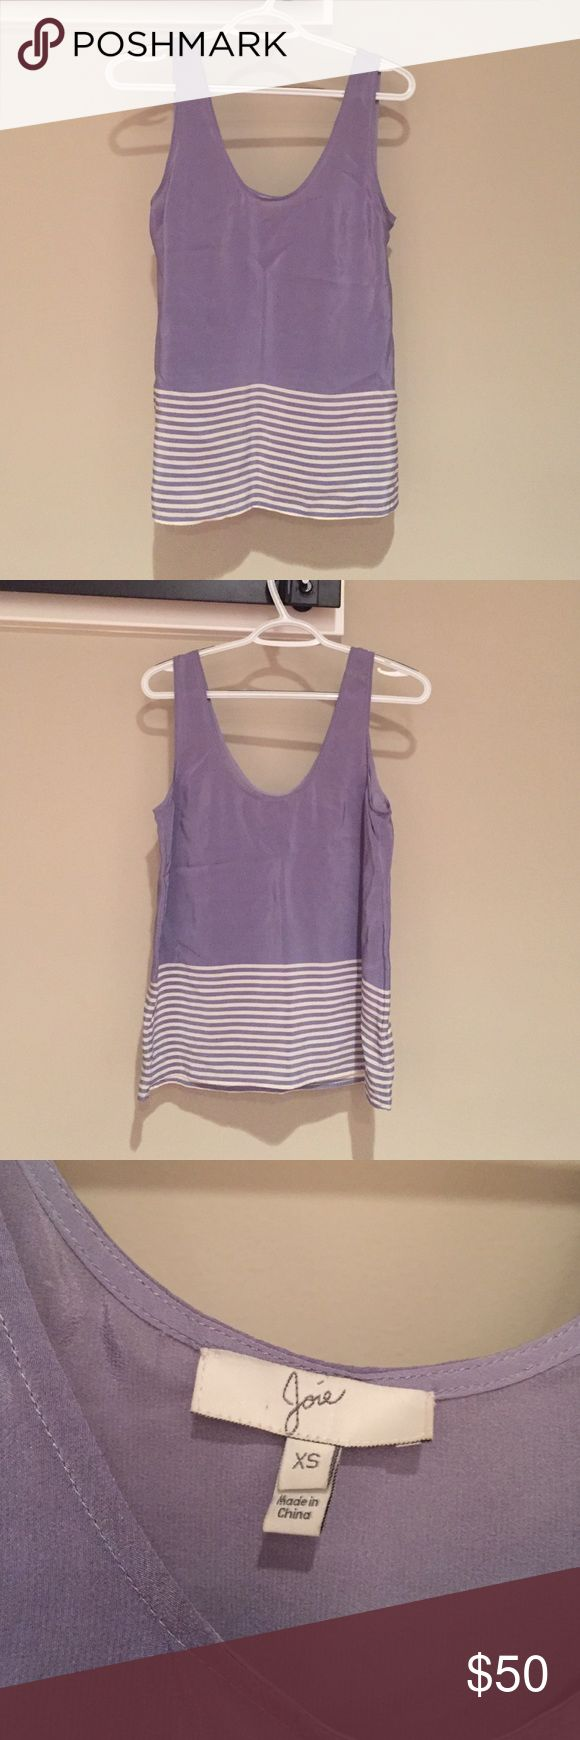 Joie Silk Tank Top Joie 100% silk tank top. Light purple with white horizontal line detail. Lightly used, great condition! Joie Tops Tank Tops